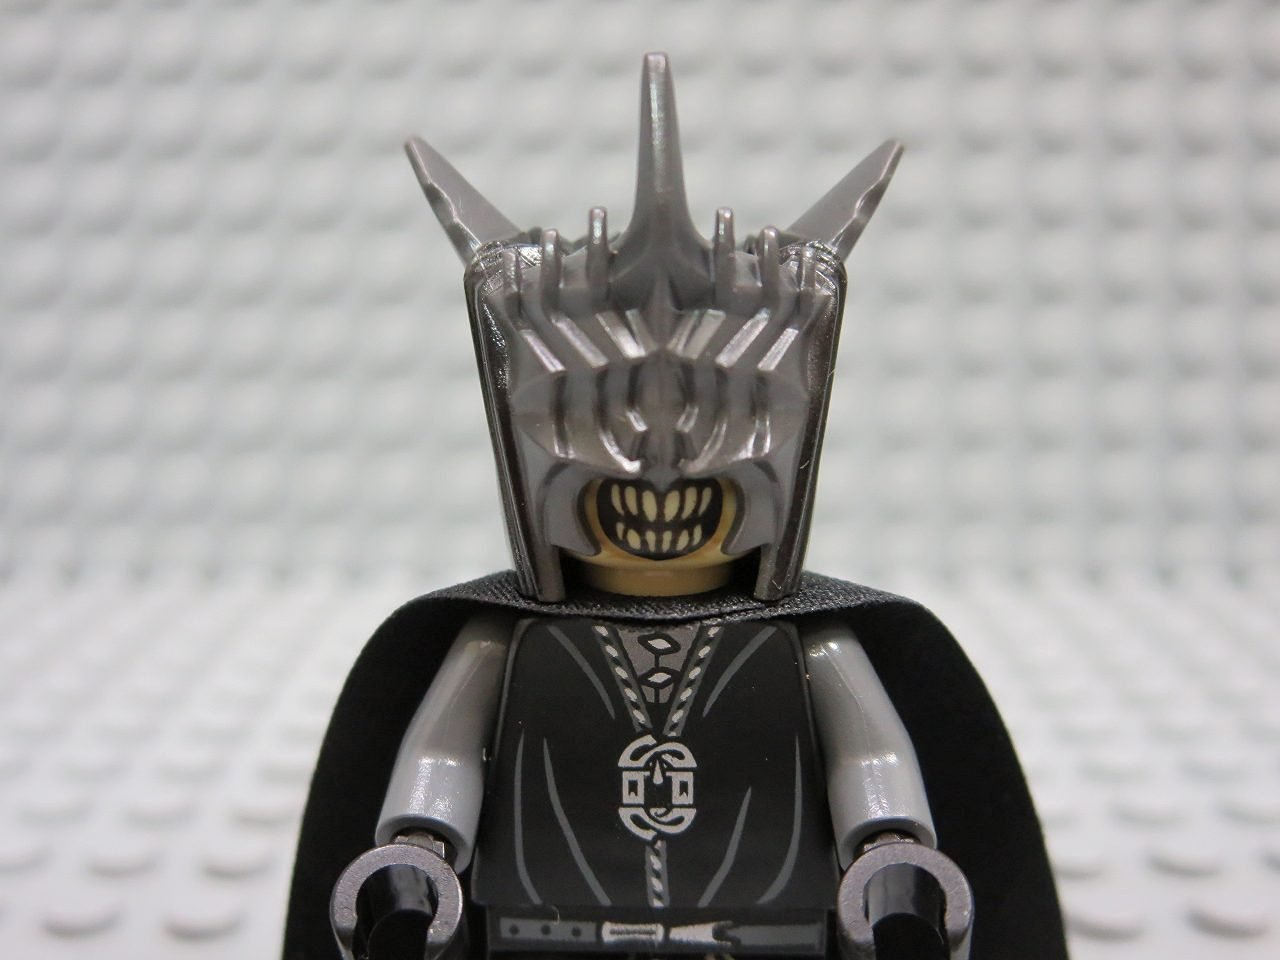 Buy Lego Mouth Of Sauron With Horse From Set Lotr Battle At The Lord Rings Black Gate 79007 Minifig Hobbit 064 A